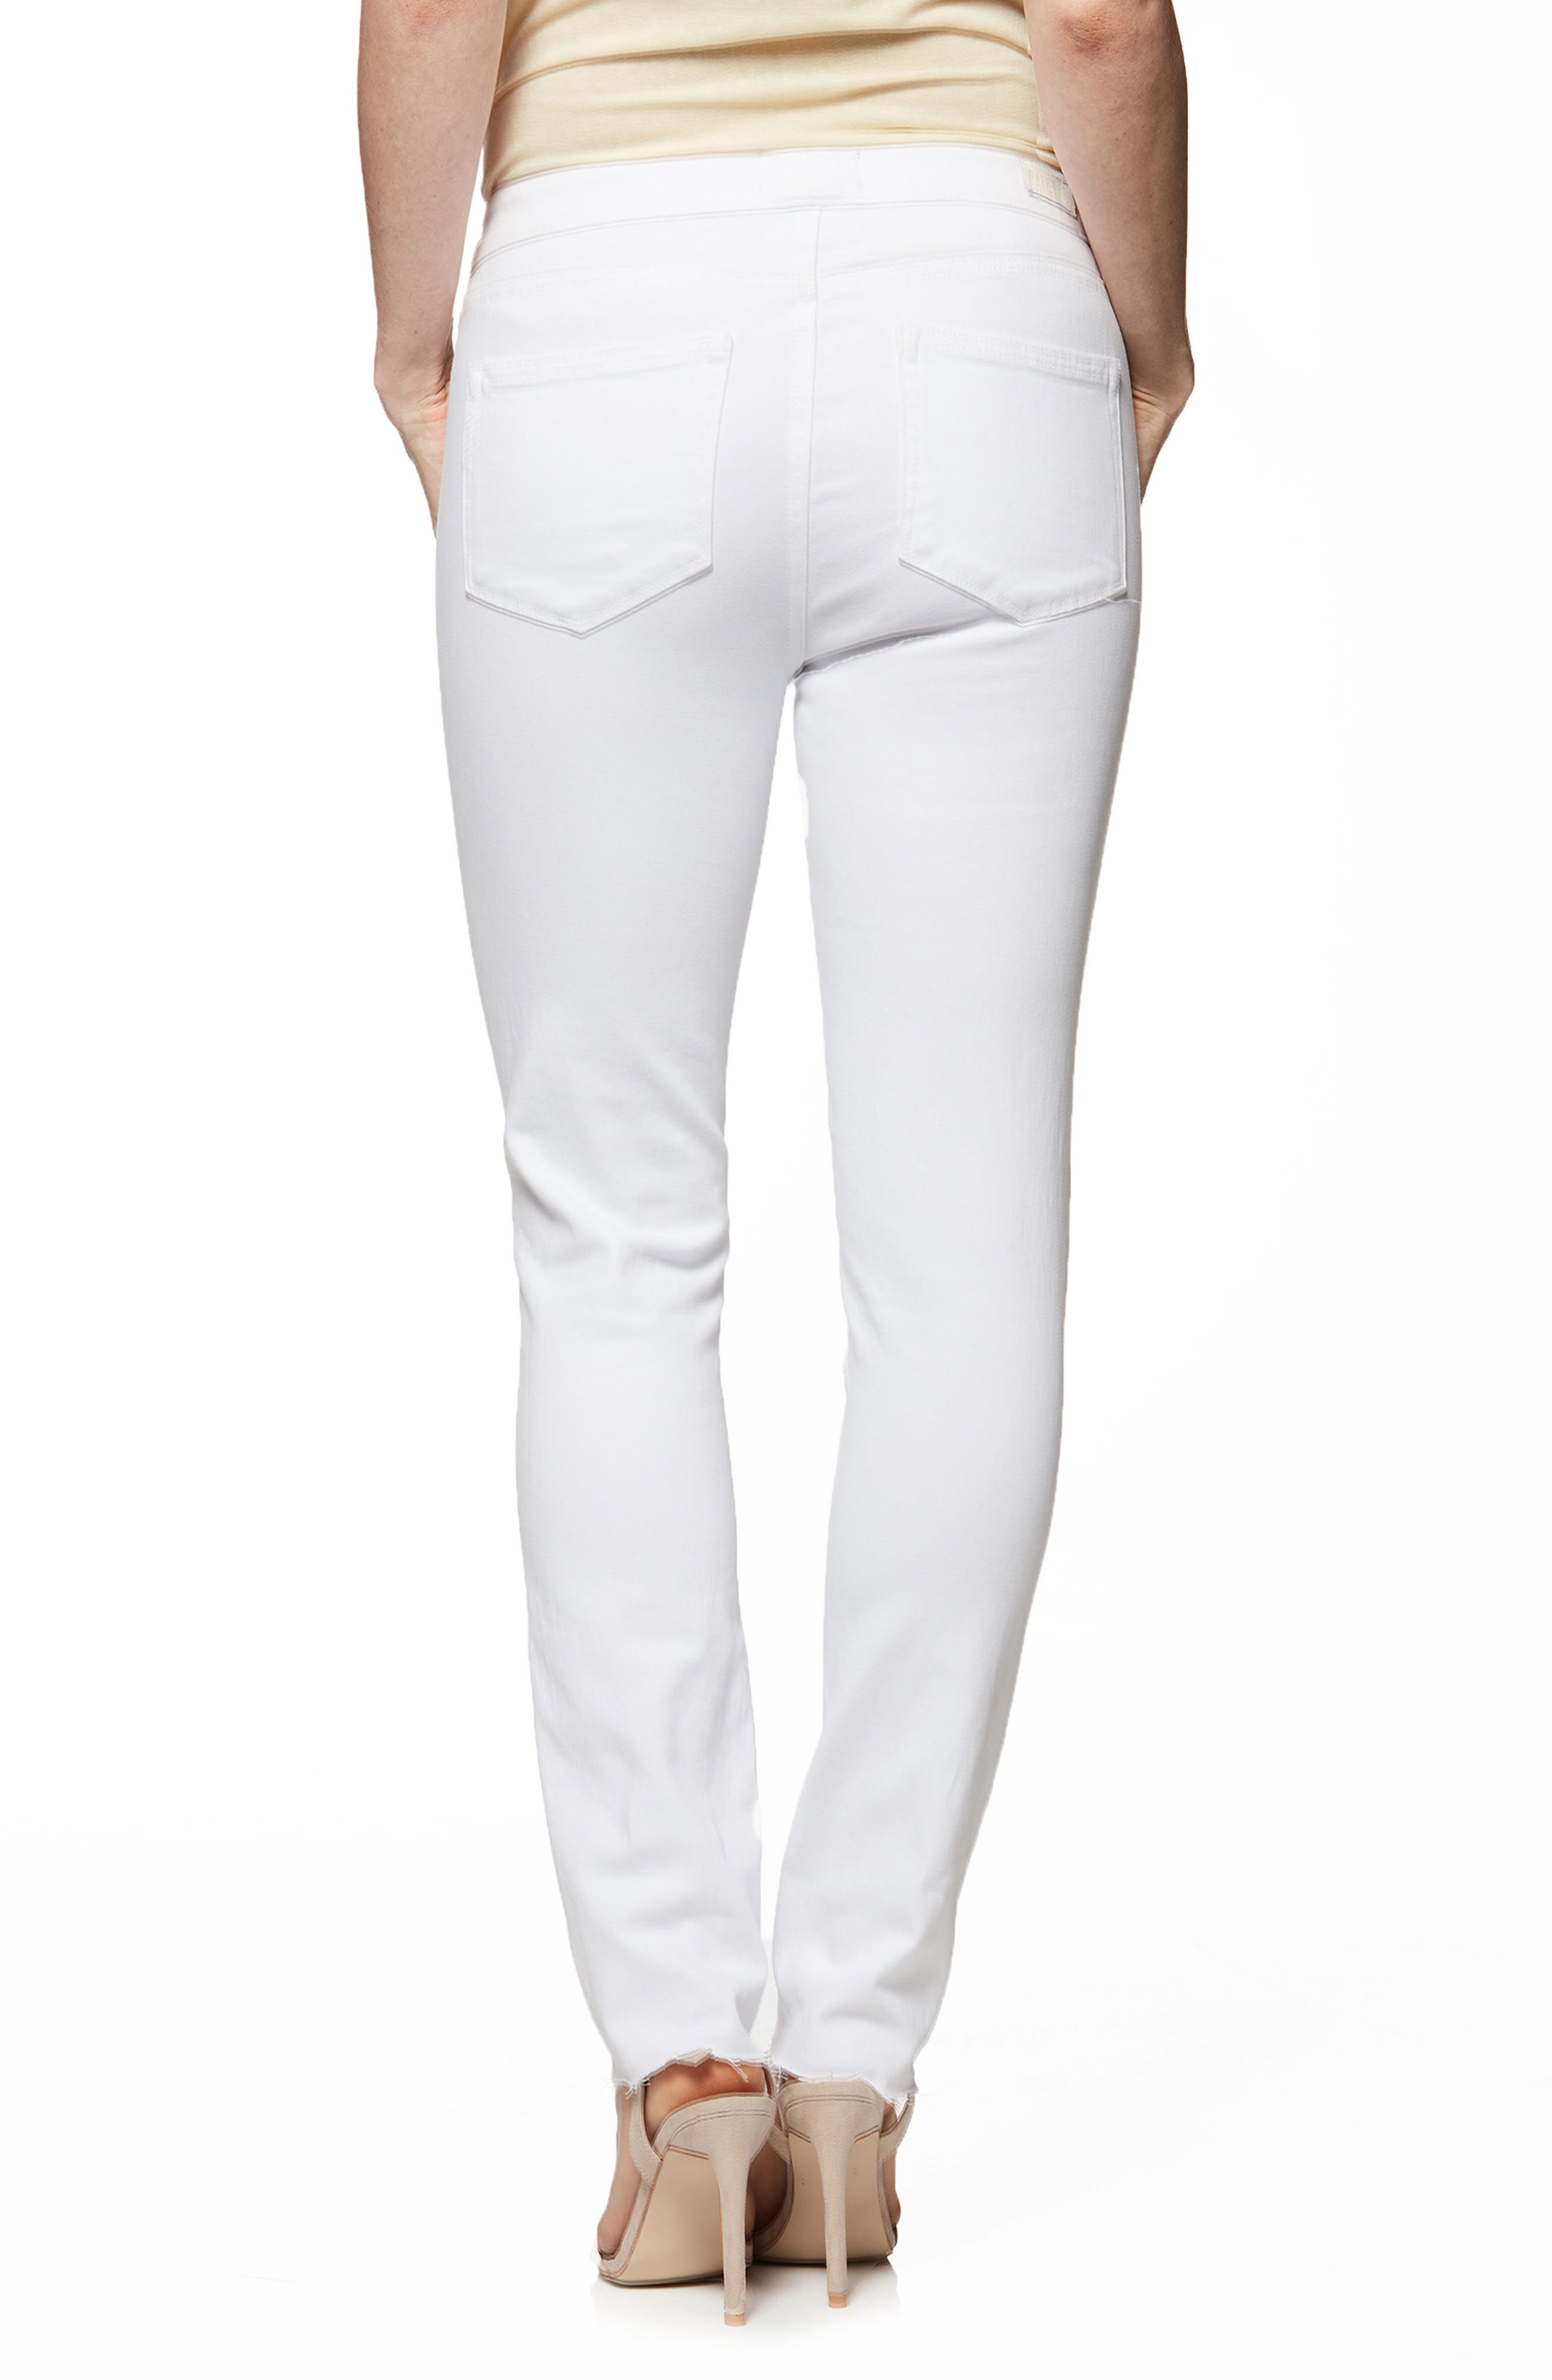 PAIGE,                             Hoxton High Waist Ankle Skinny Jeans,                             Alternate thumbnail 2, color,                             100